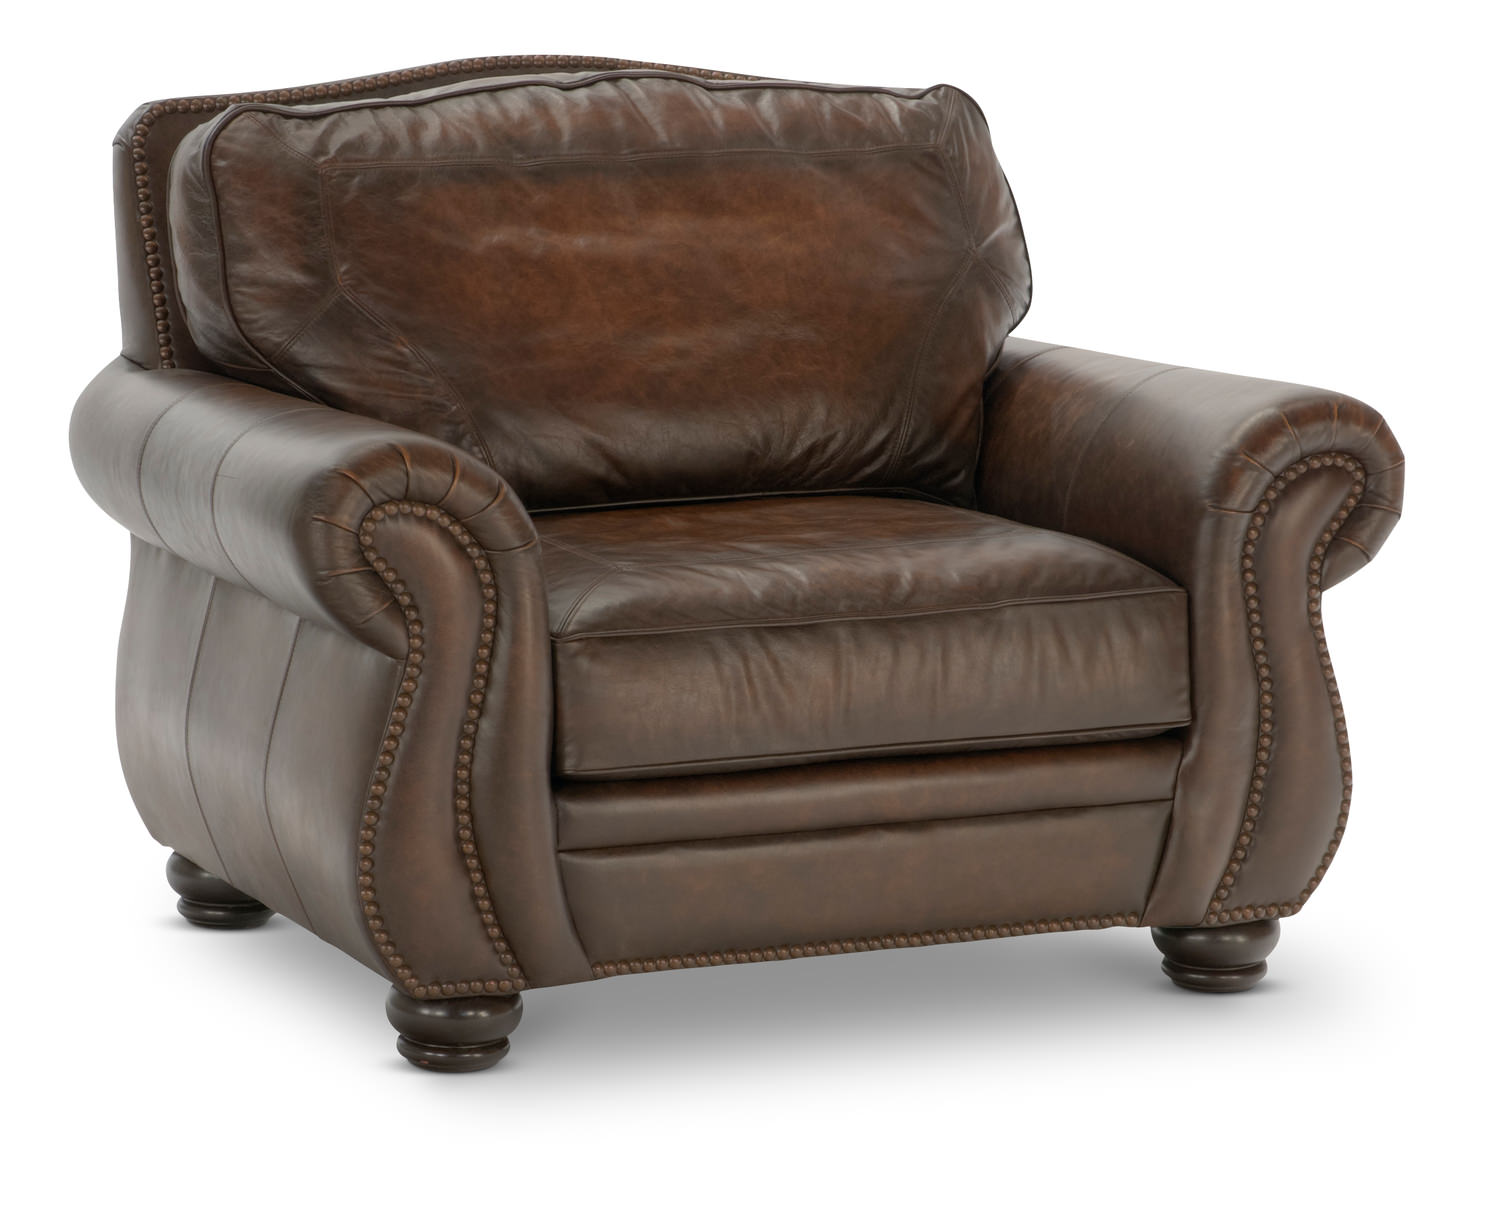 Breckenridge Leather Sofa By Bernhardt Images Frompo